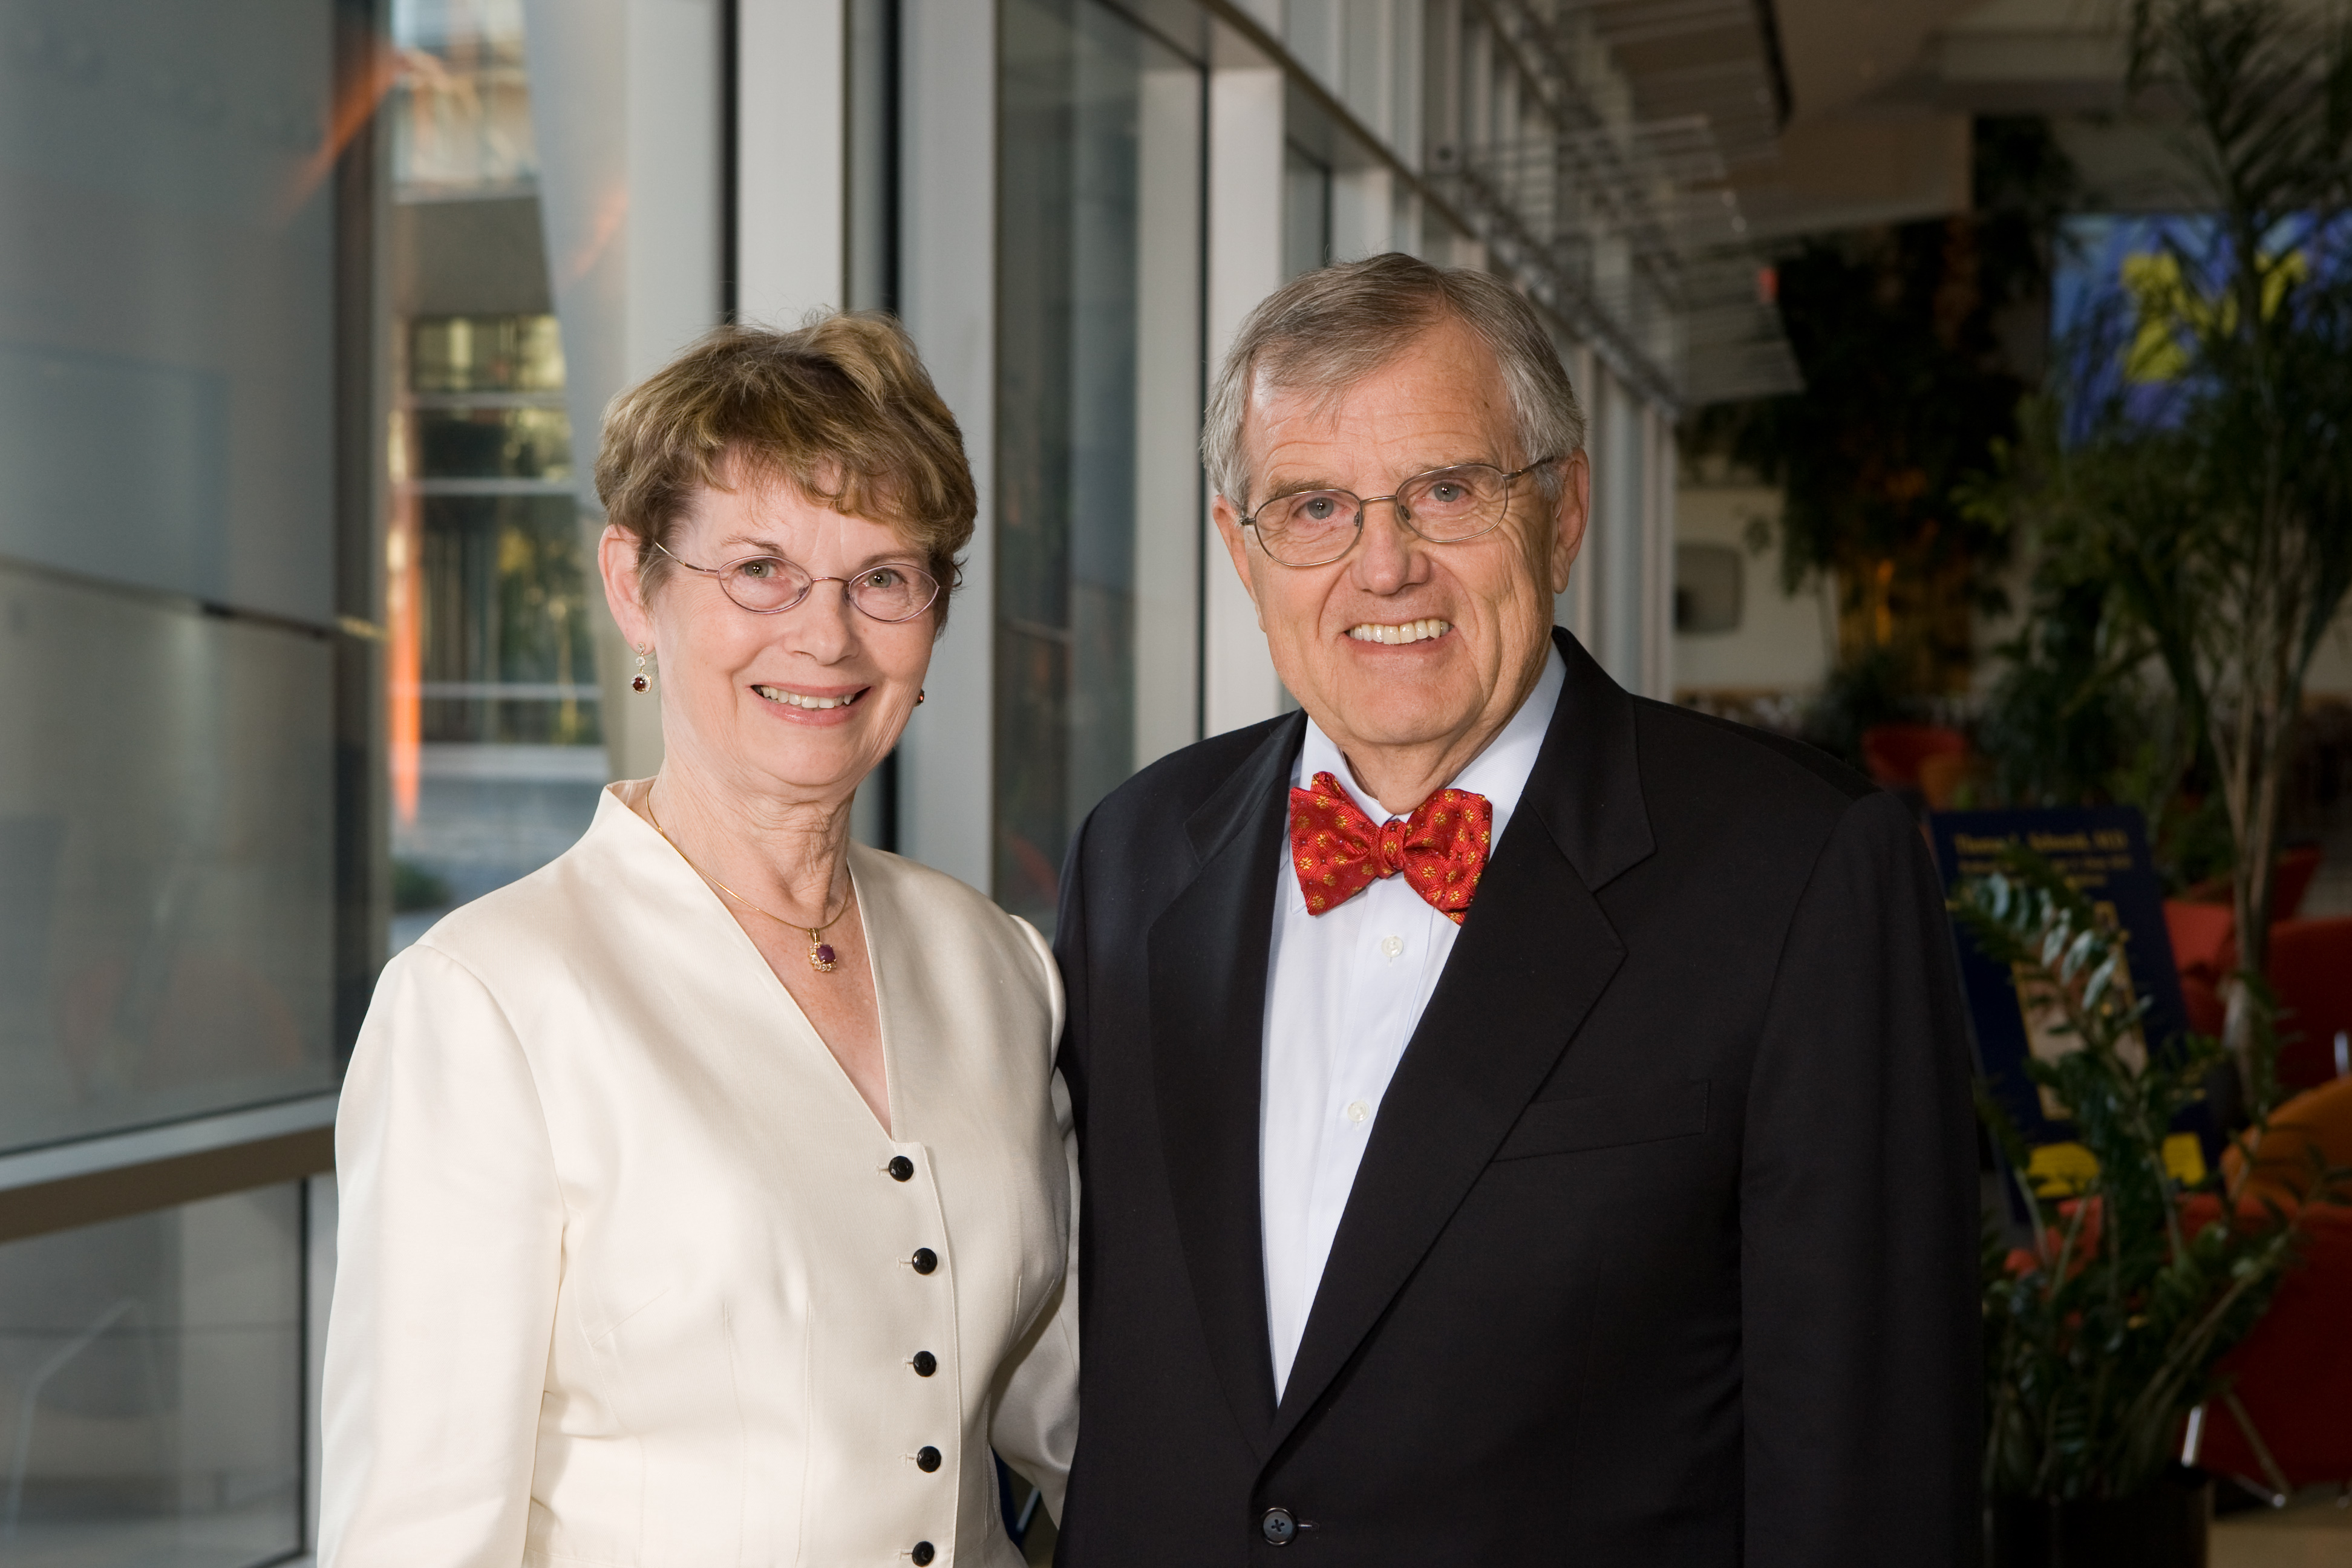 Christel and Dale Williams, M.D.